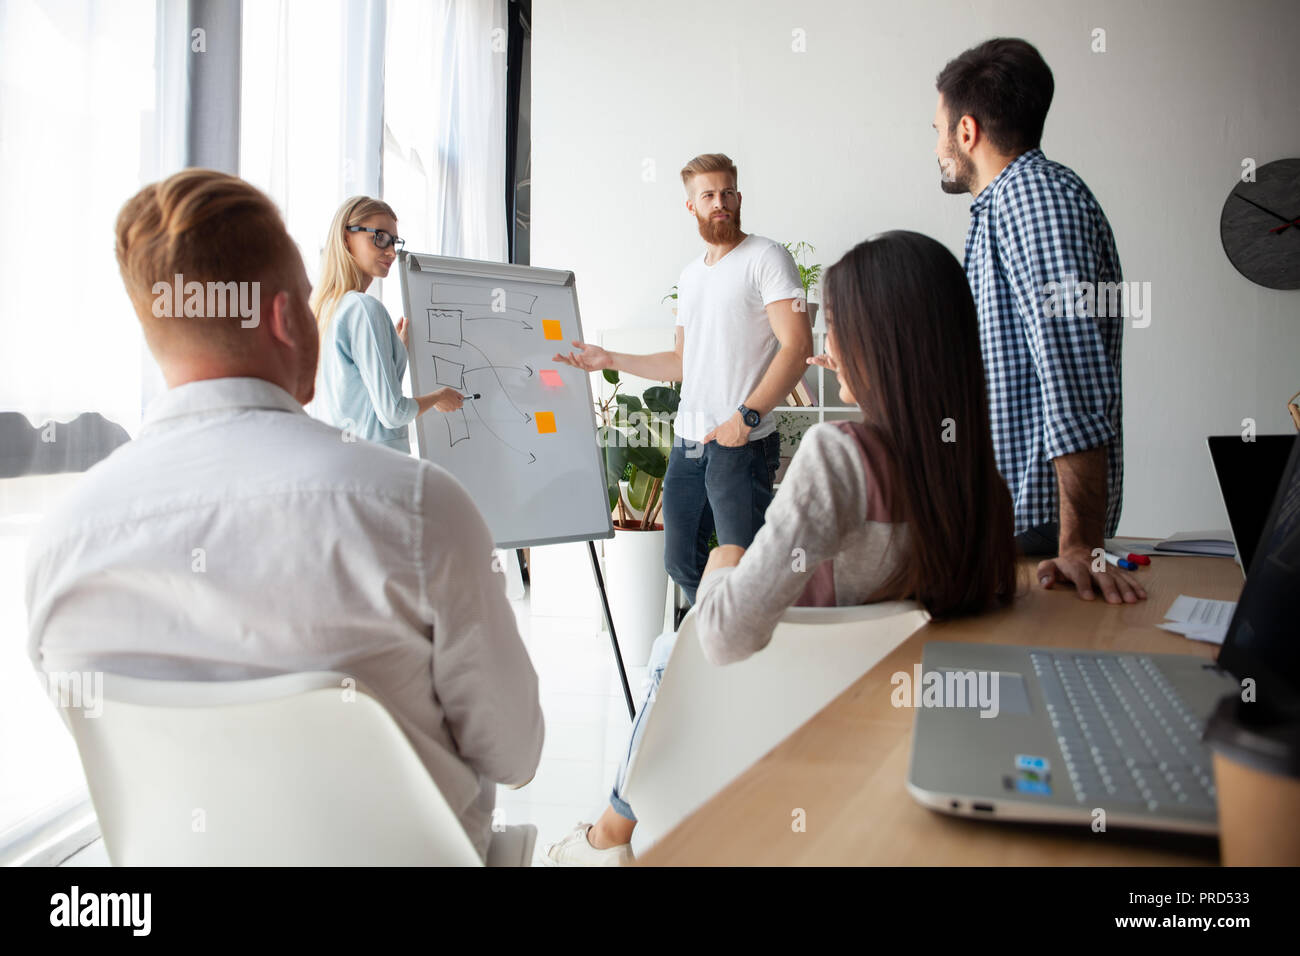 Developing new strategy. Two young colleagues conducting presentation while working with their business team in the office. - Stock Image